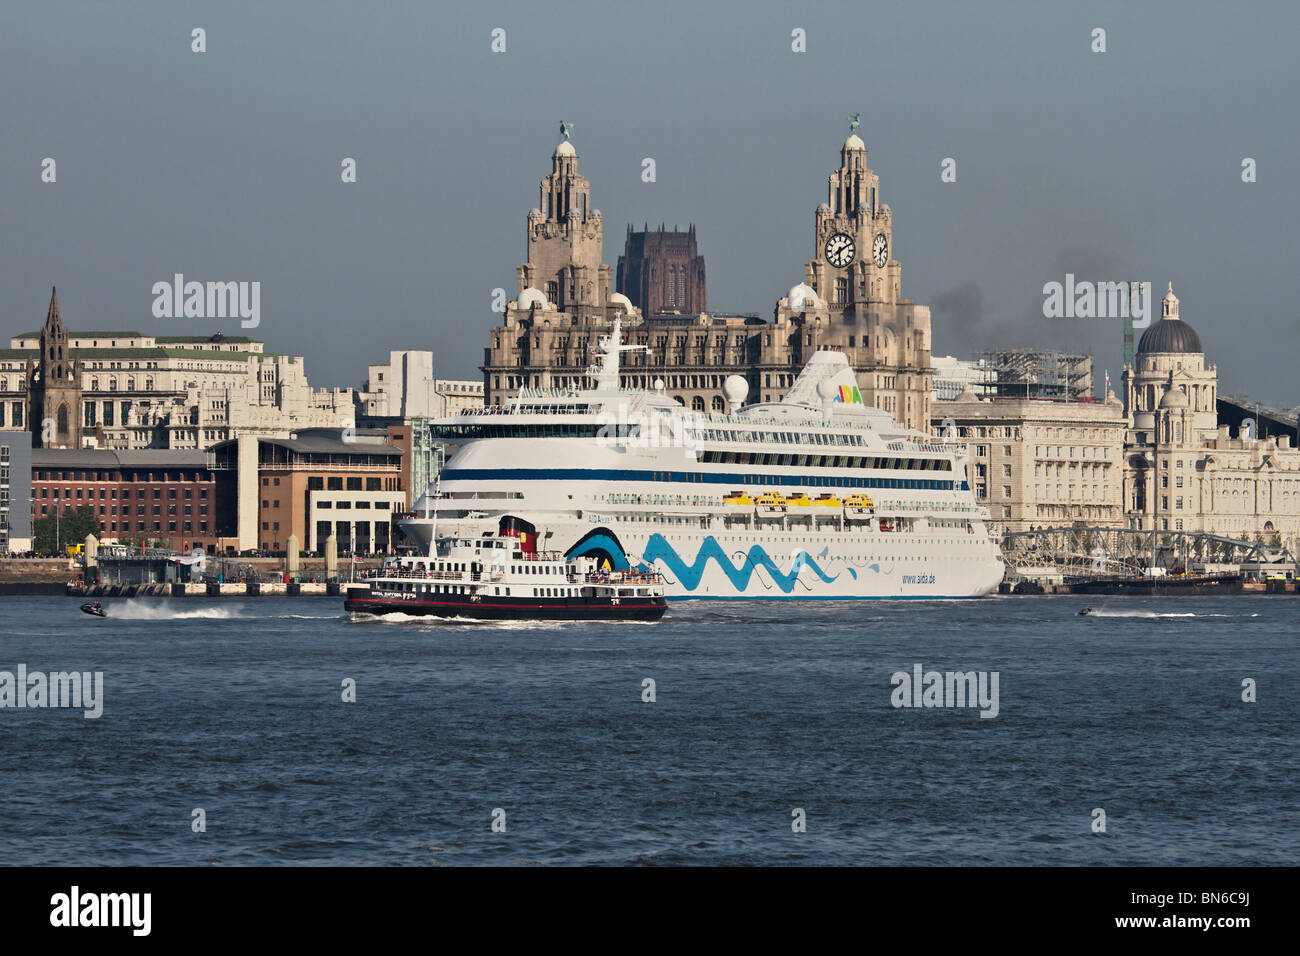 Passenger cruise ship AIDA AURA preparing to to depart after a day visit to Liverpool. - Stock Image